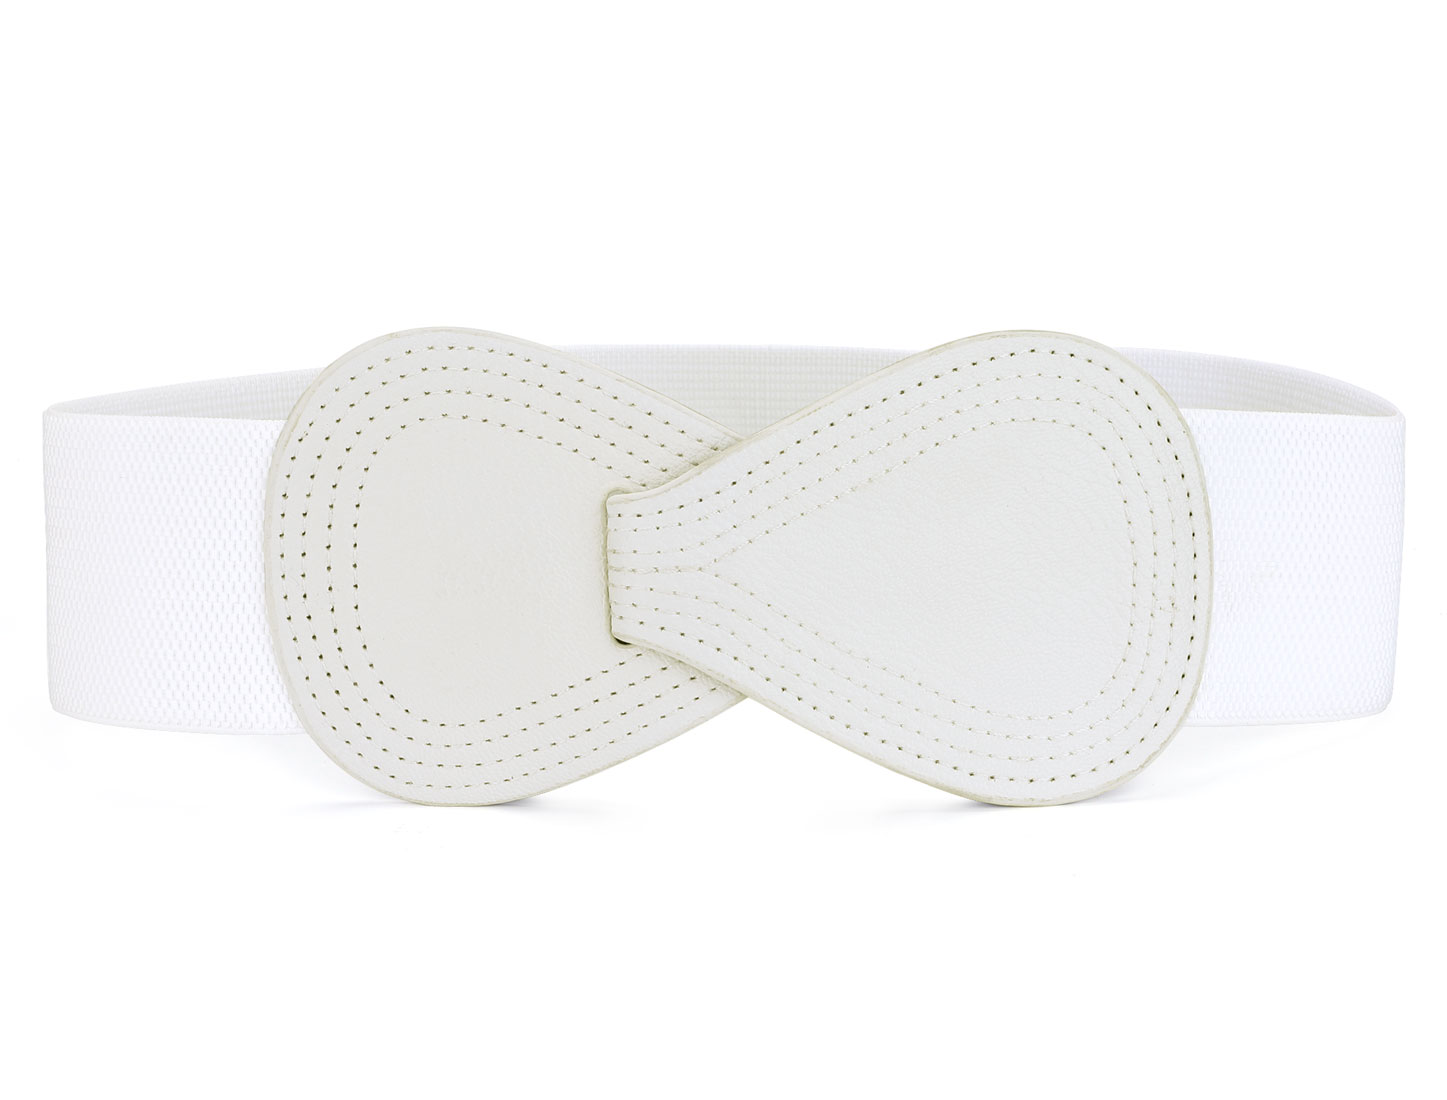 White Interlocking 8-shaped Buckle Stretchy Wait Belt for Ladies